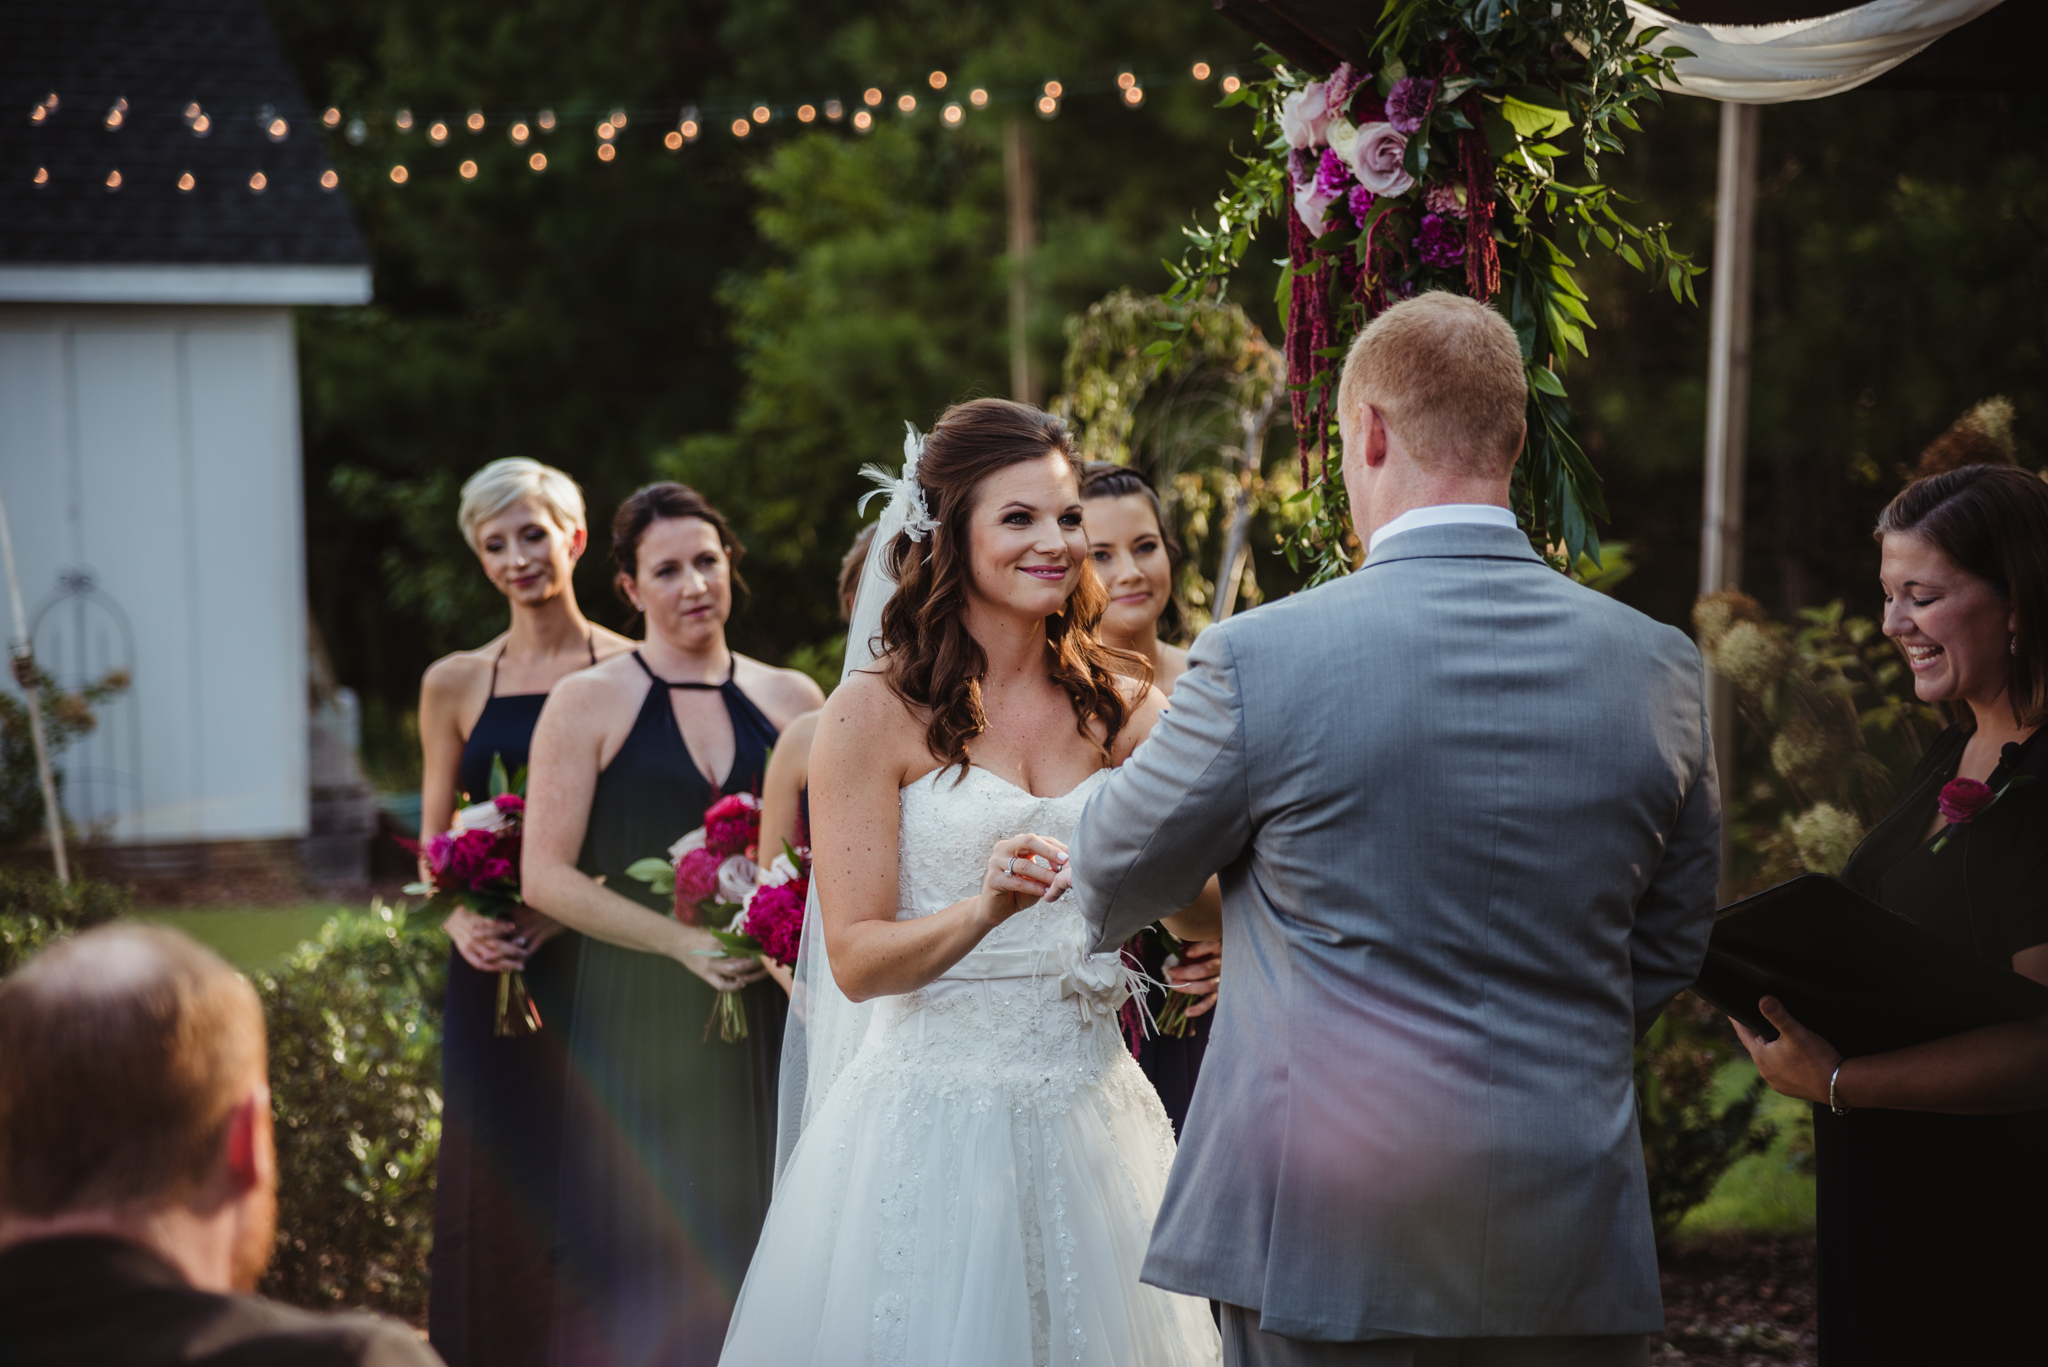 Raleigh-wedding-photographer-saying-vows-bradford-rose-trail-images.jpg